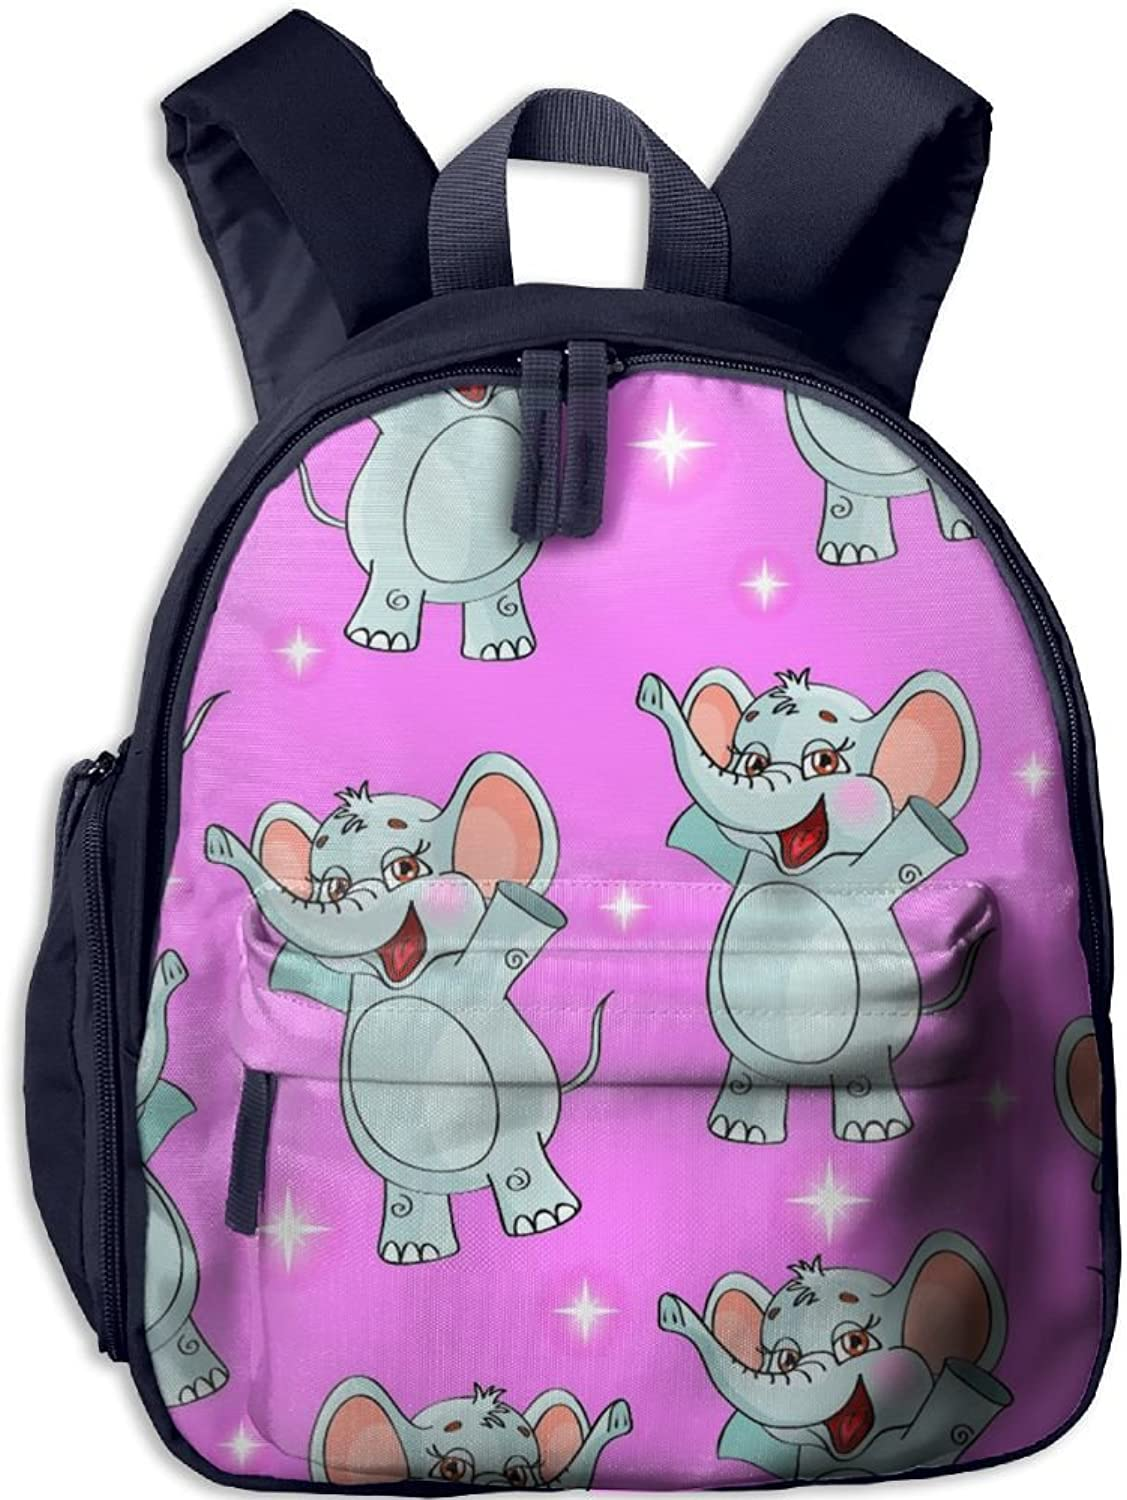 Pinta Cute Baby Elephant Cub Cool School Book Bag Backpacks for Girl's Boy's